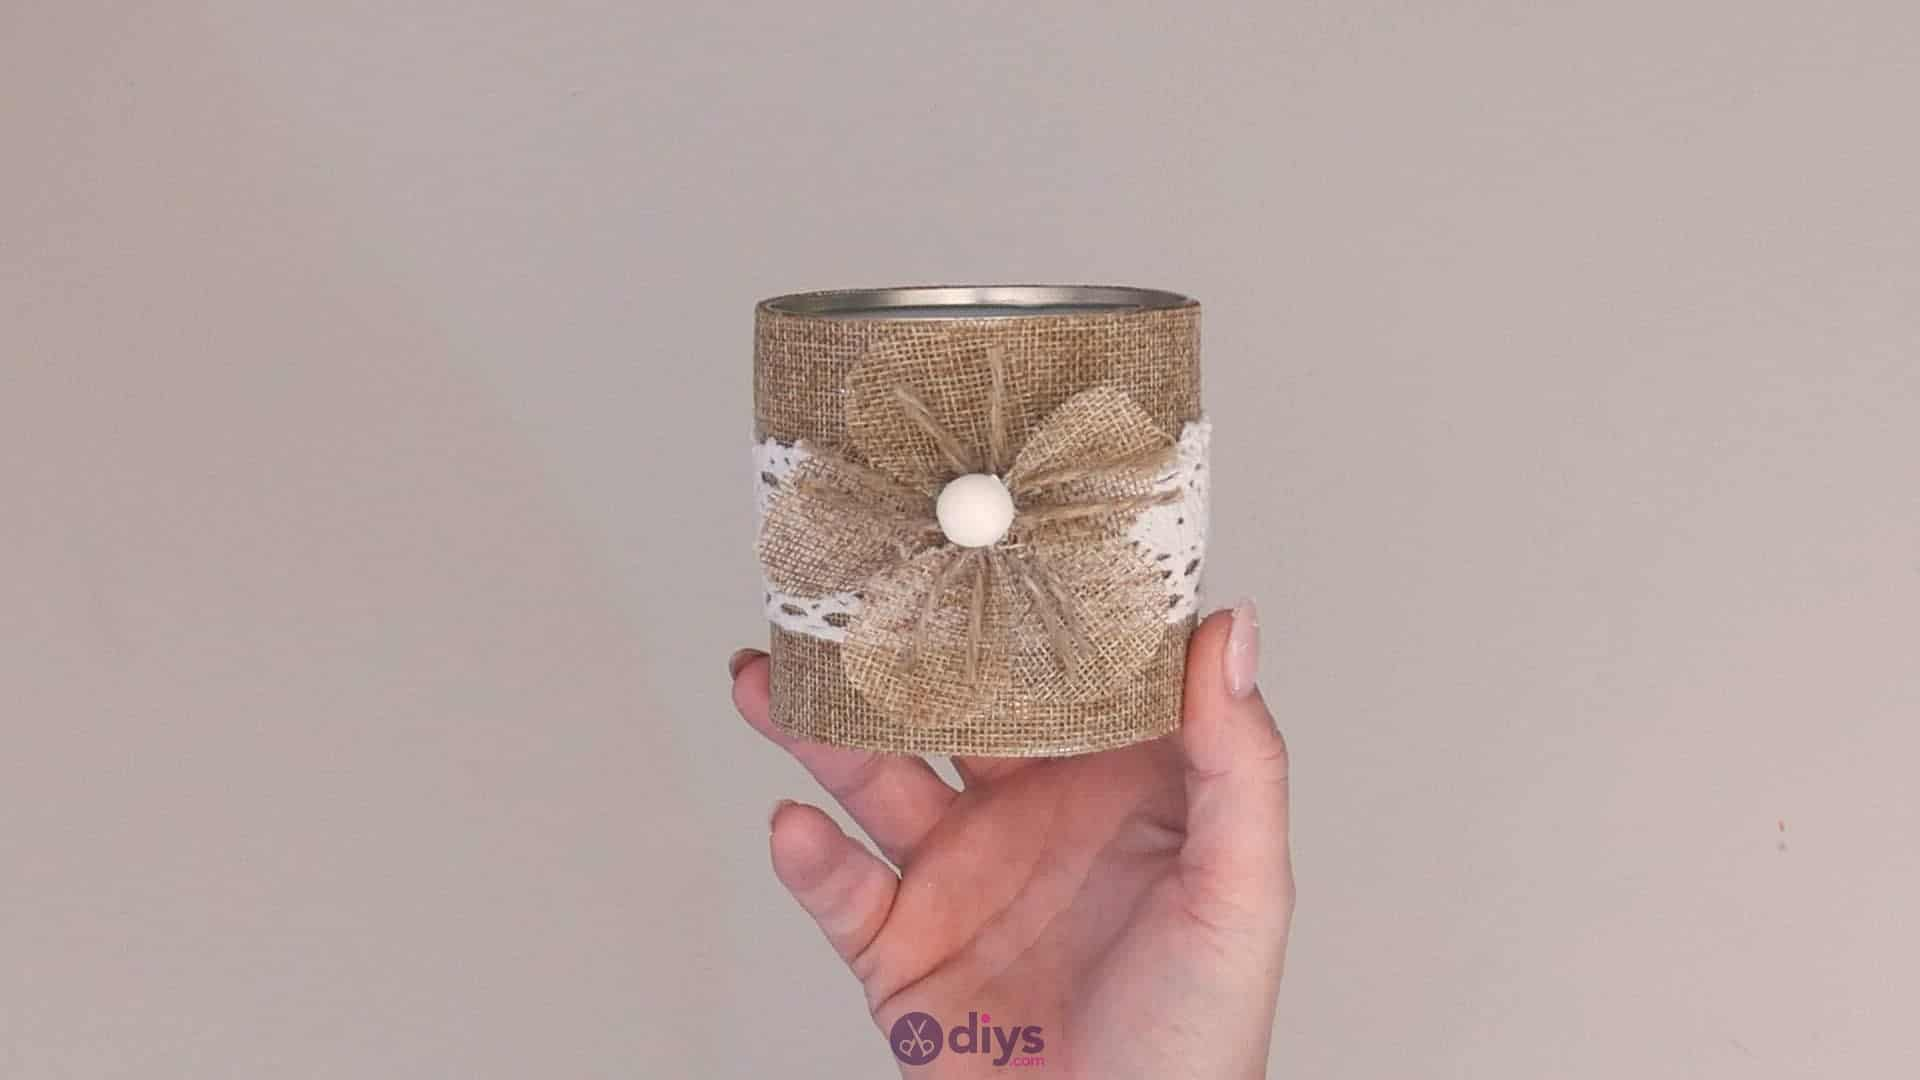 Diy rustic tin can container step 12c